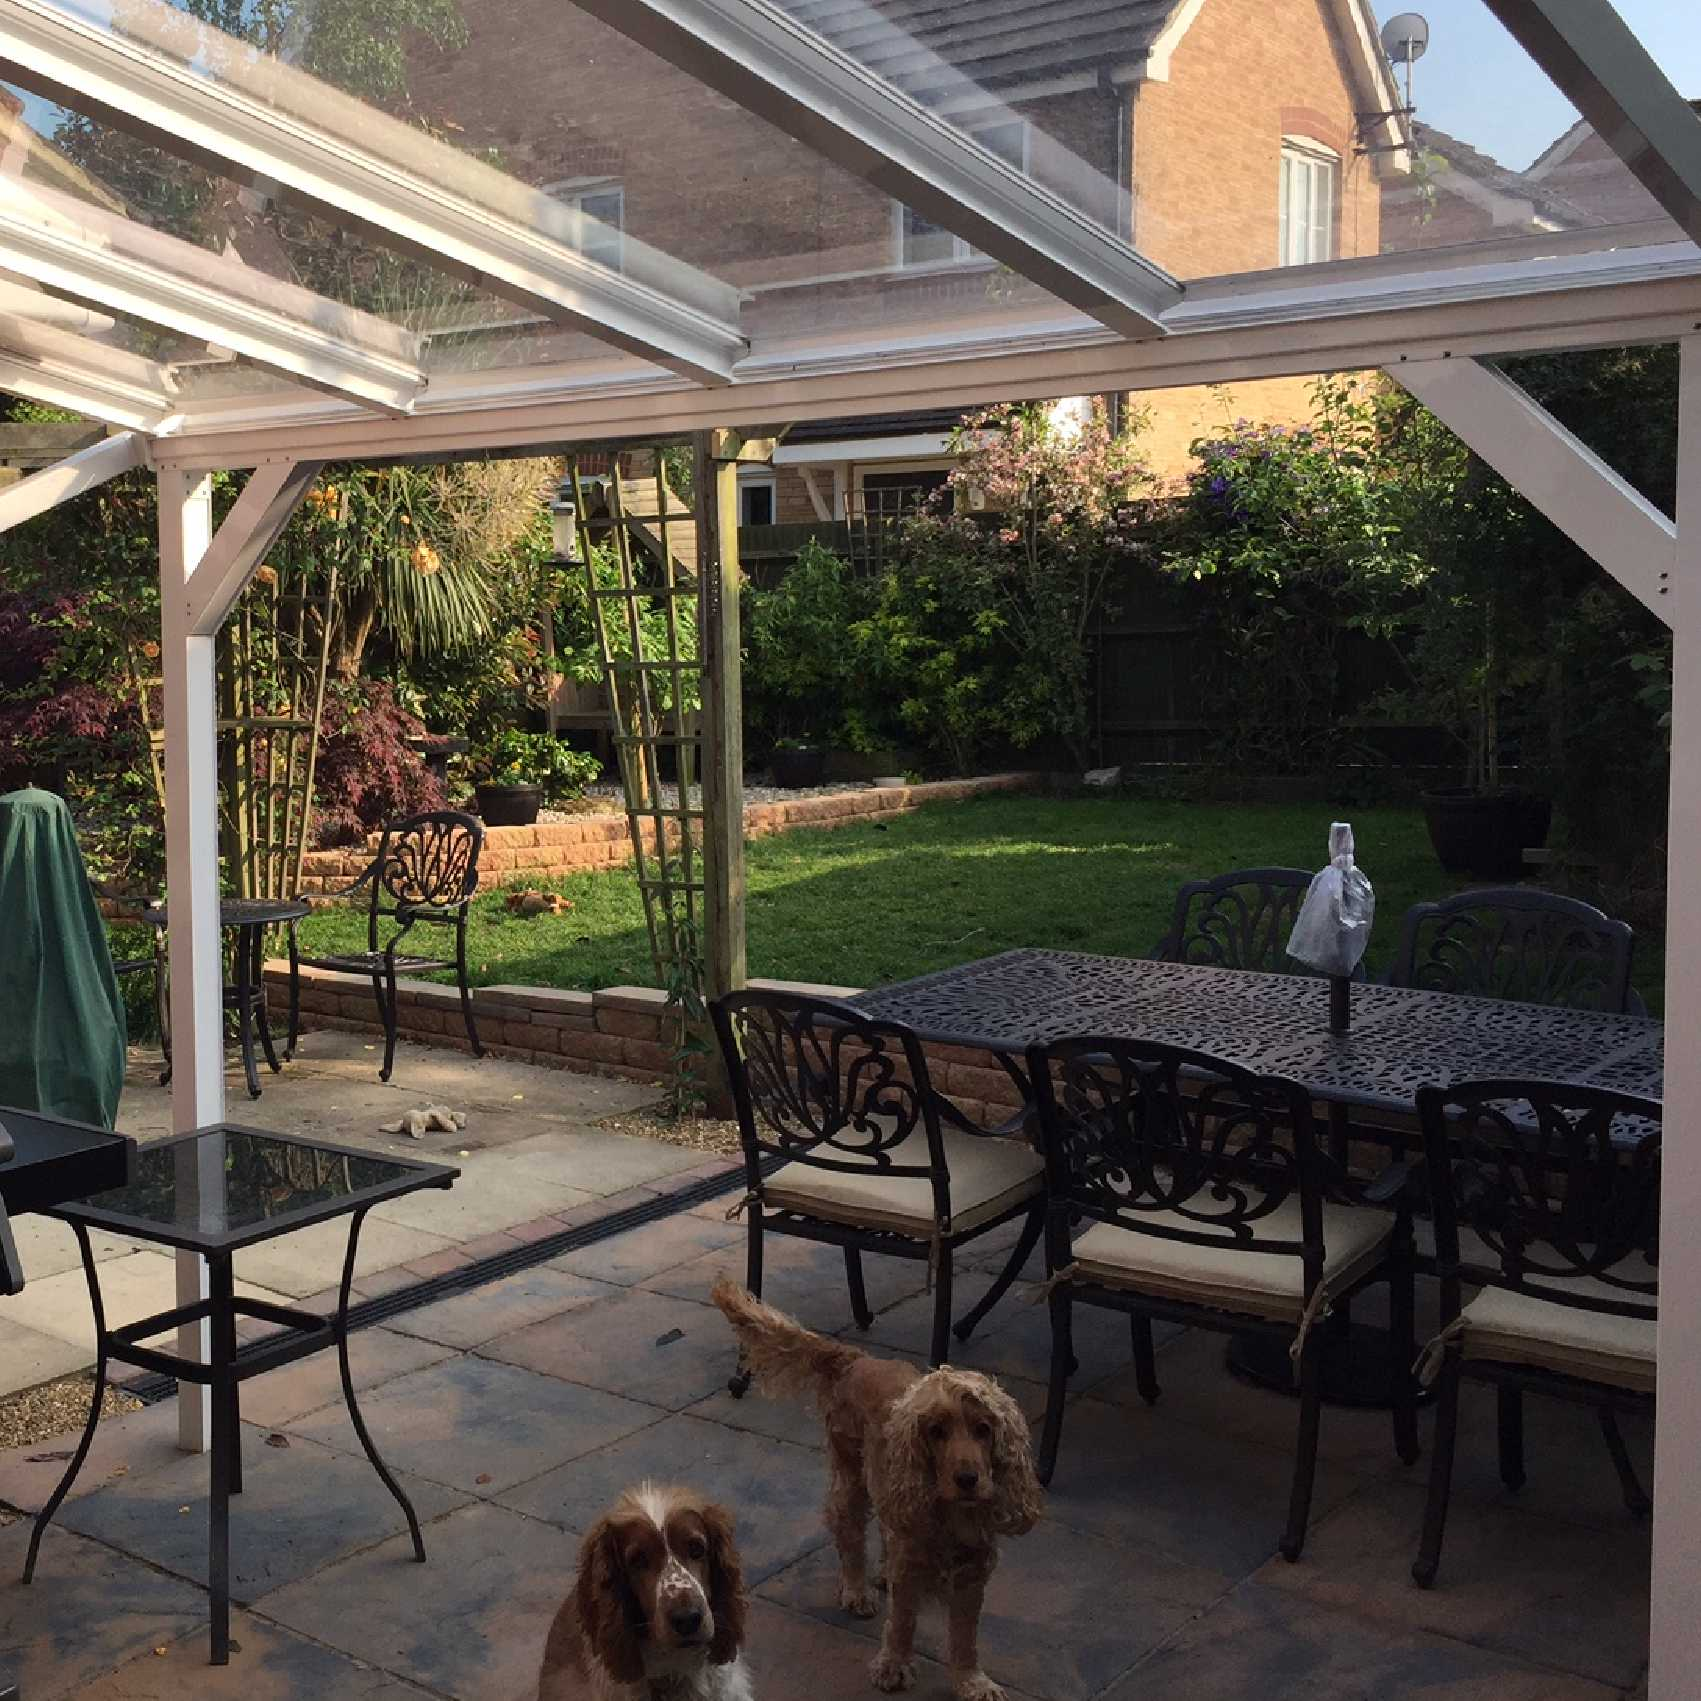 Affordable Omega Smart White Lean-To Canopy with 6mm Glass Clear Plate Polycarbonate Glazing - 2.8m (W) x 2.5m (P), (2) Supporting Posts